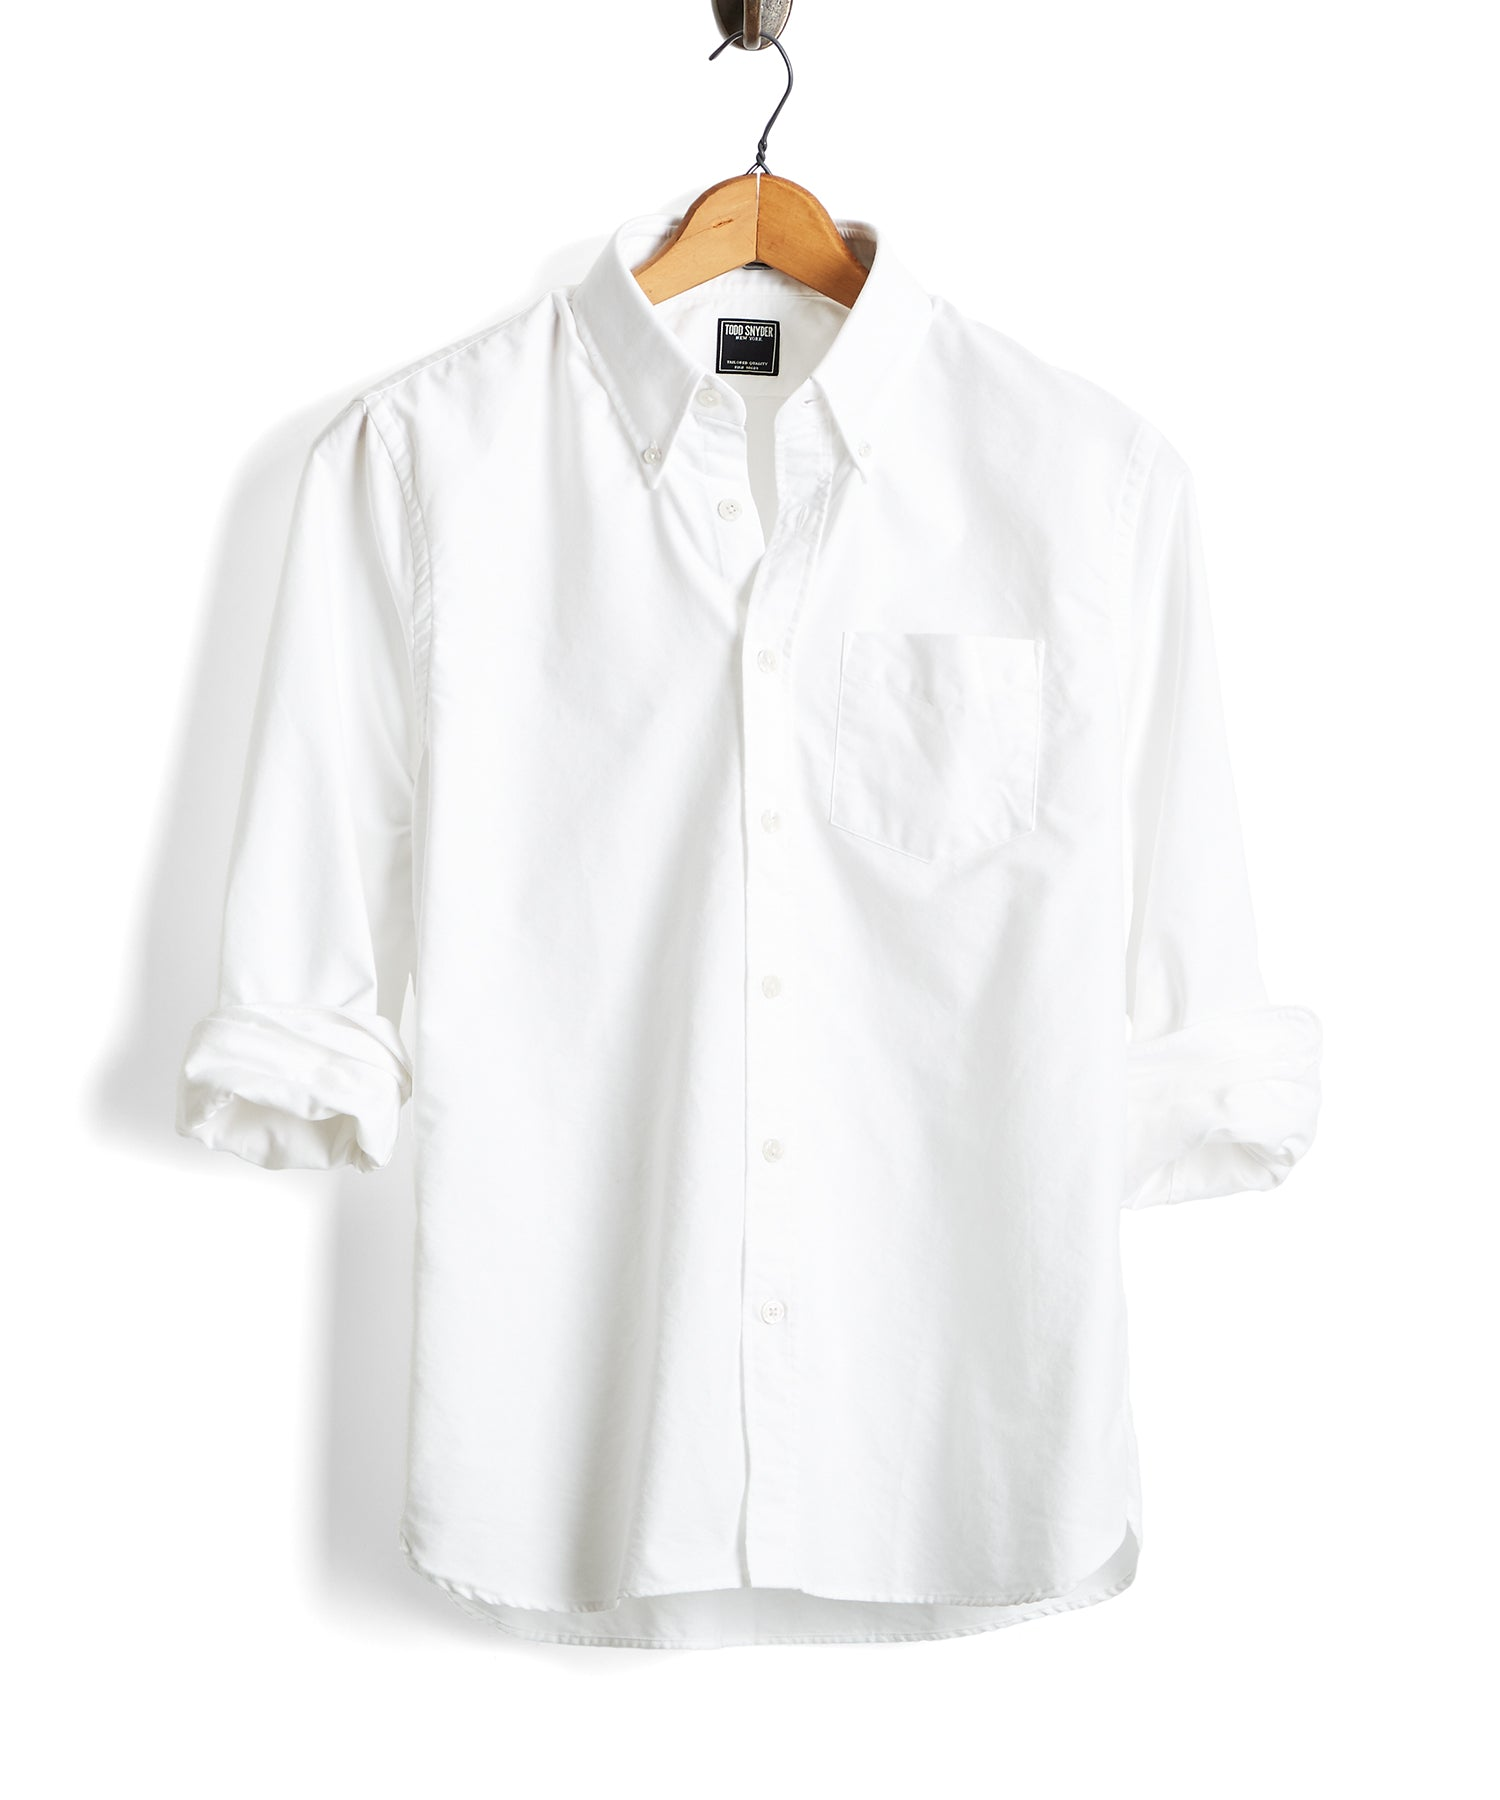 Todd Snyder Oxford Shirt